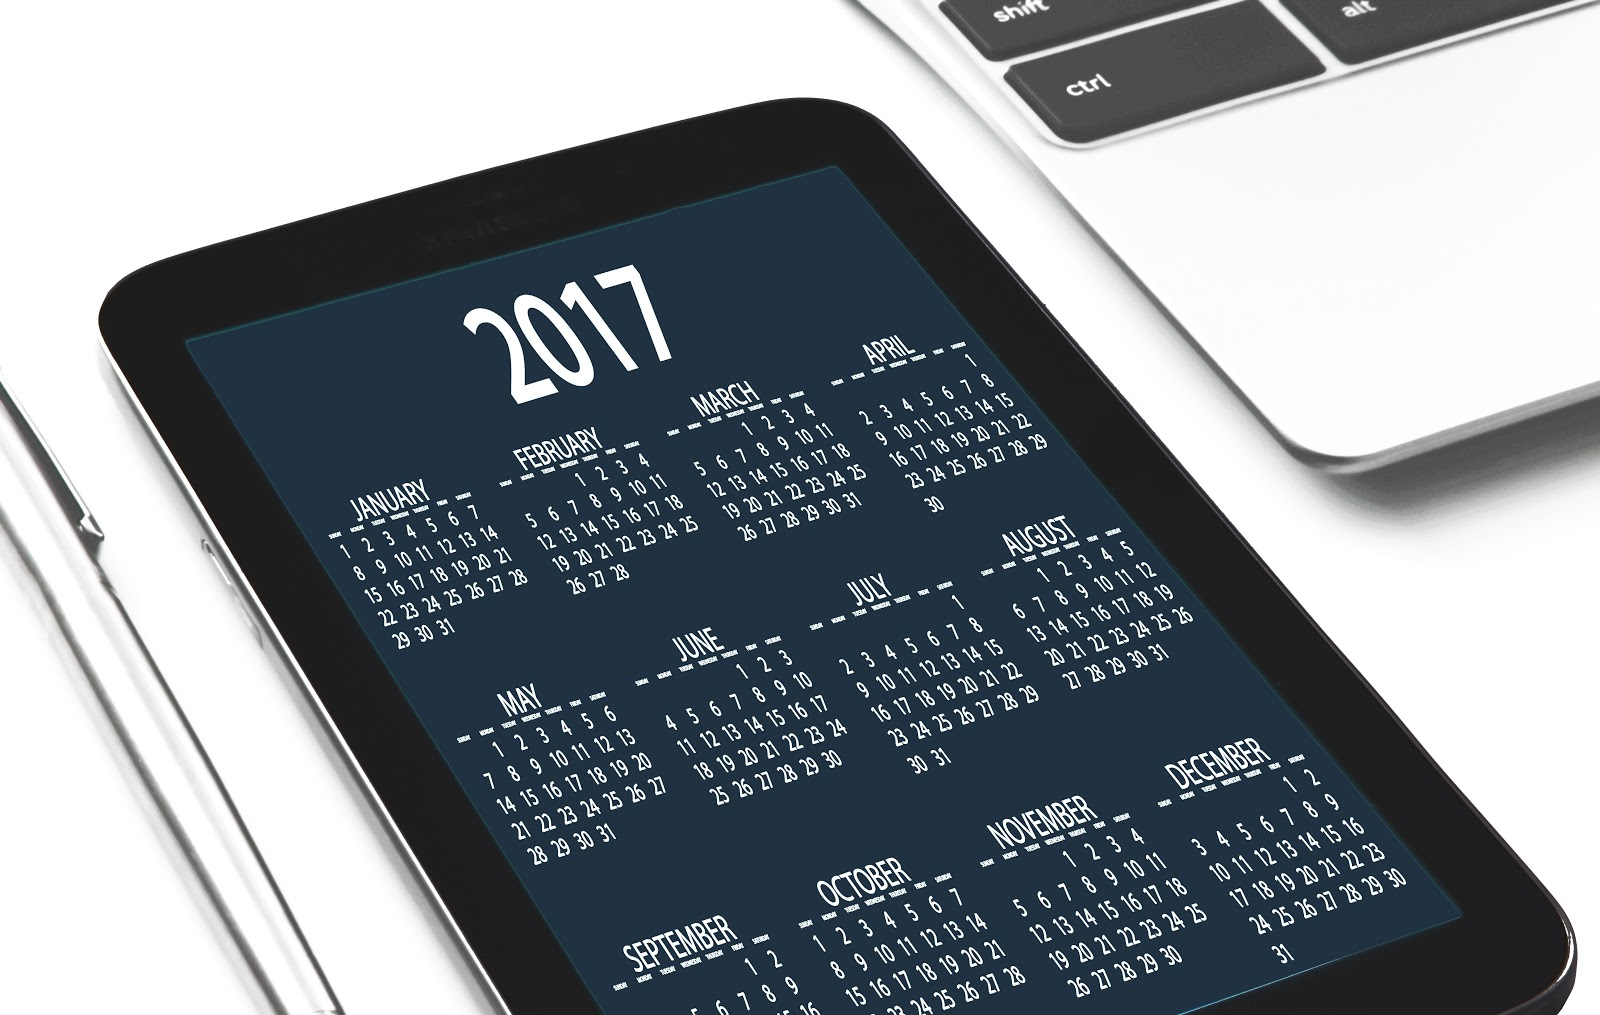 2017 year calendar on tablet screen